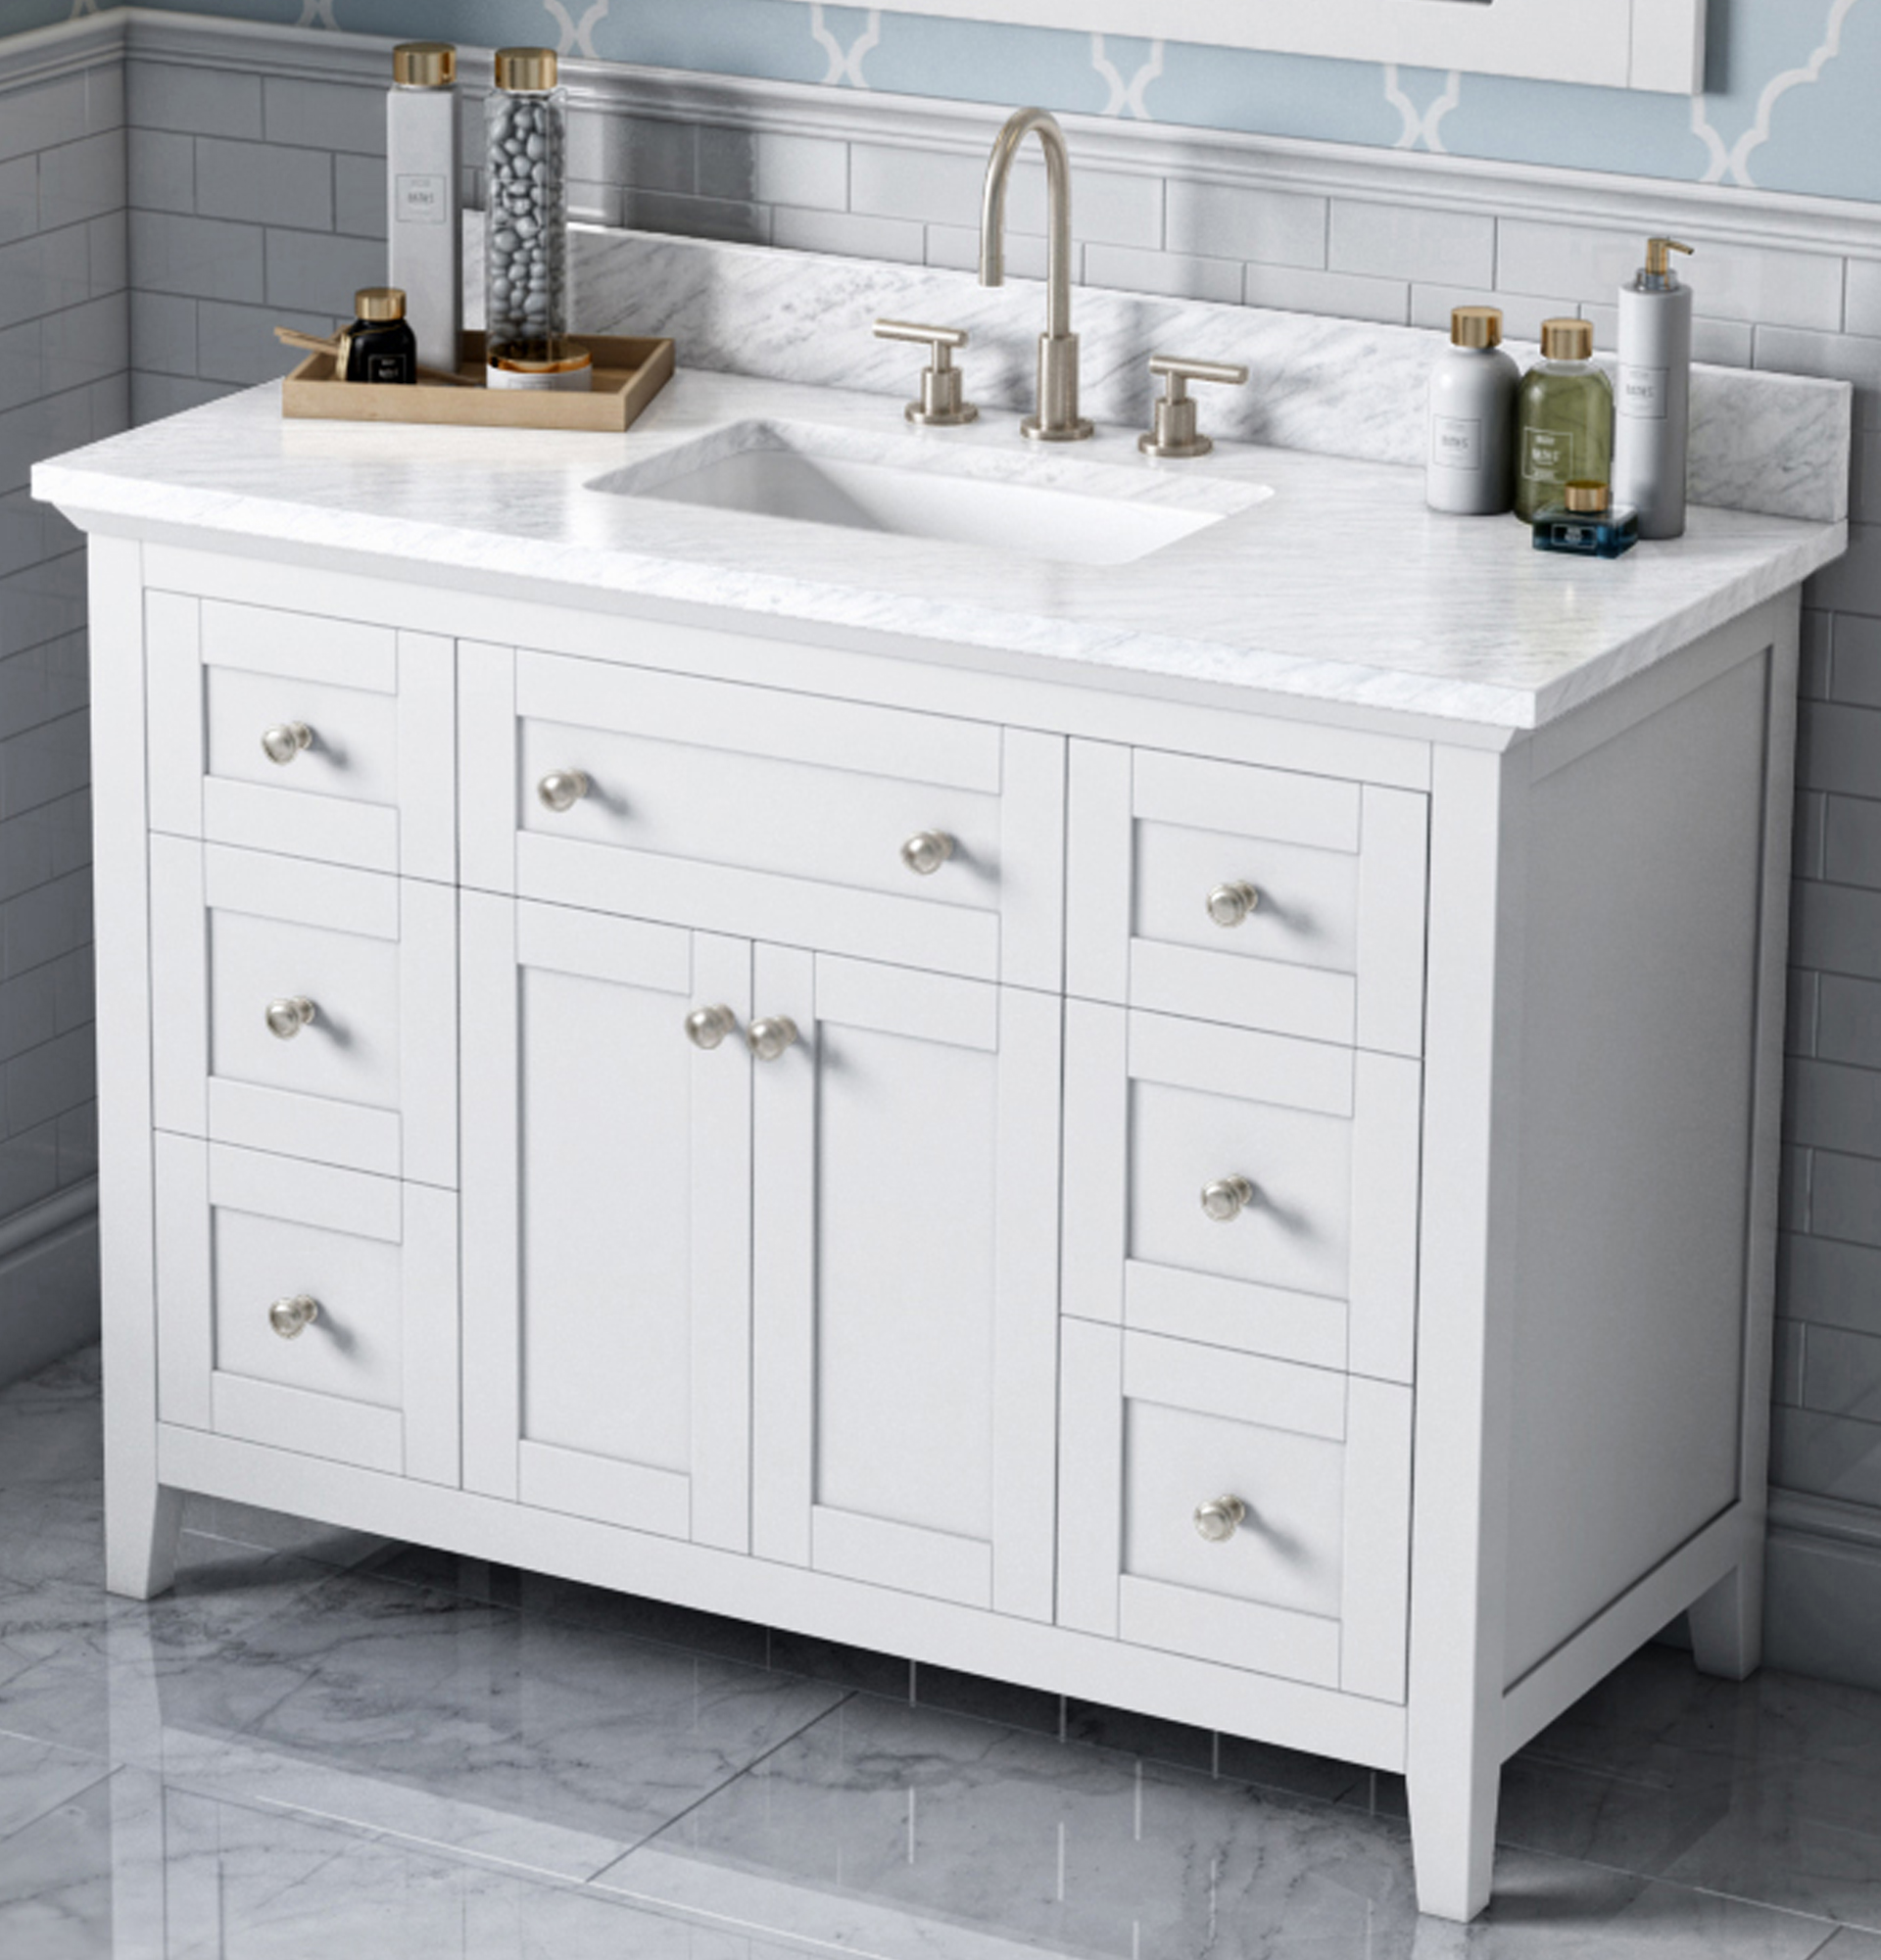 "48"" Single Sink Bathroom Vanity White Finish White Carrara Marble Vanity Top, Undermount Rectangle Bowl"